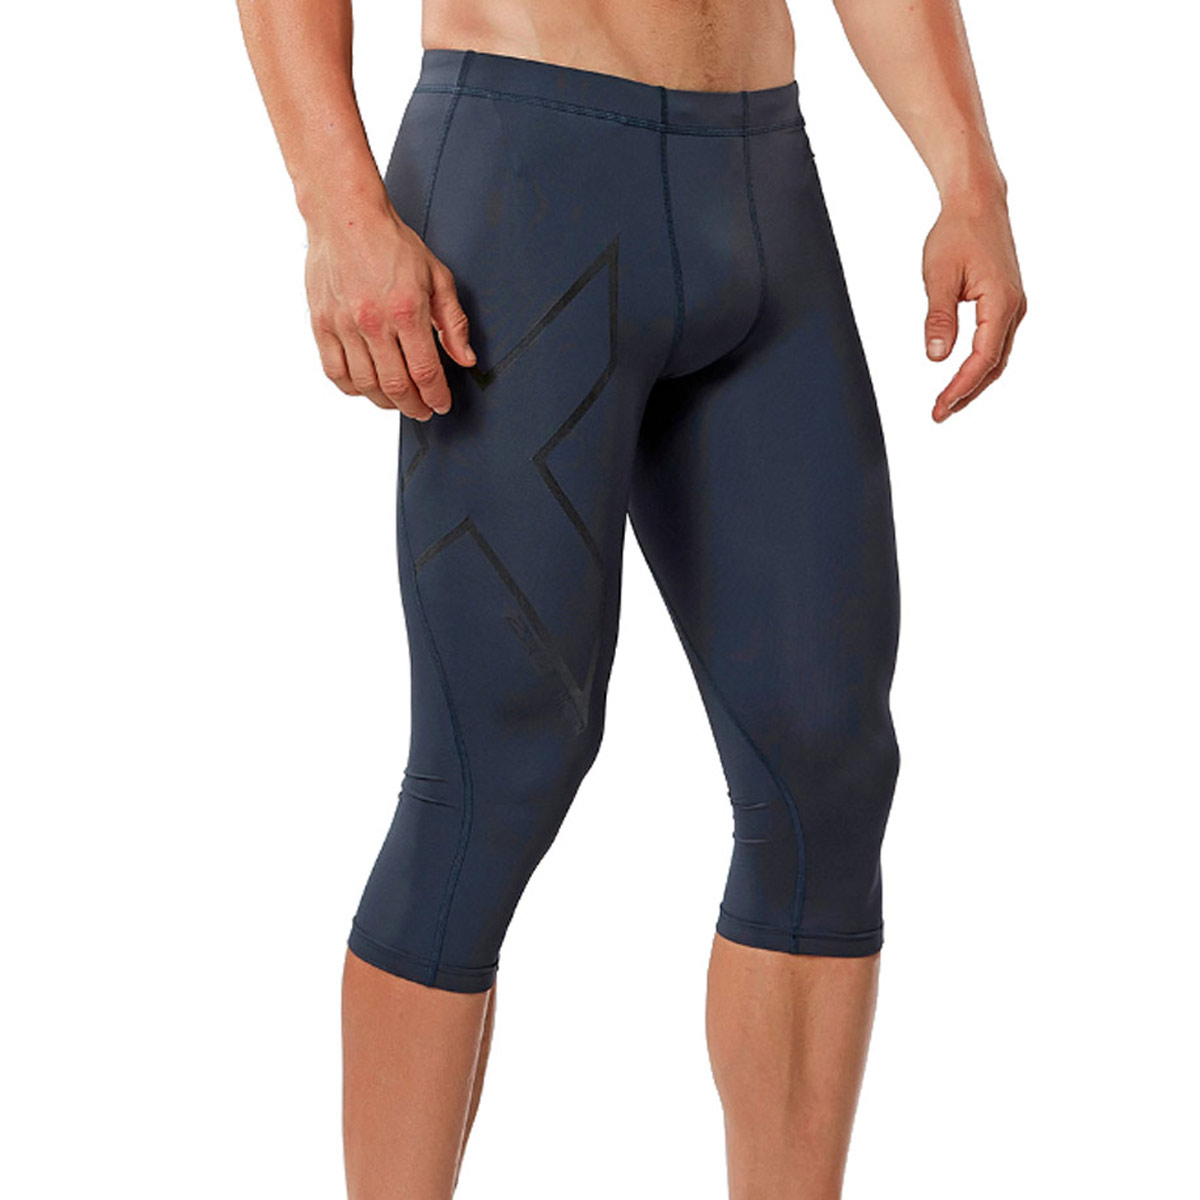 e1107ff3abe90 2XU Men's Hyoptik Compression 3/4 Tights Baselayer on Sale | Powder7.com